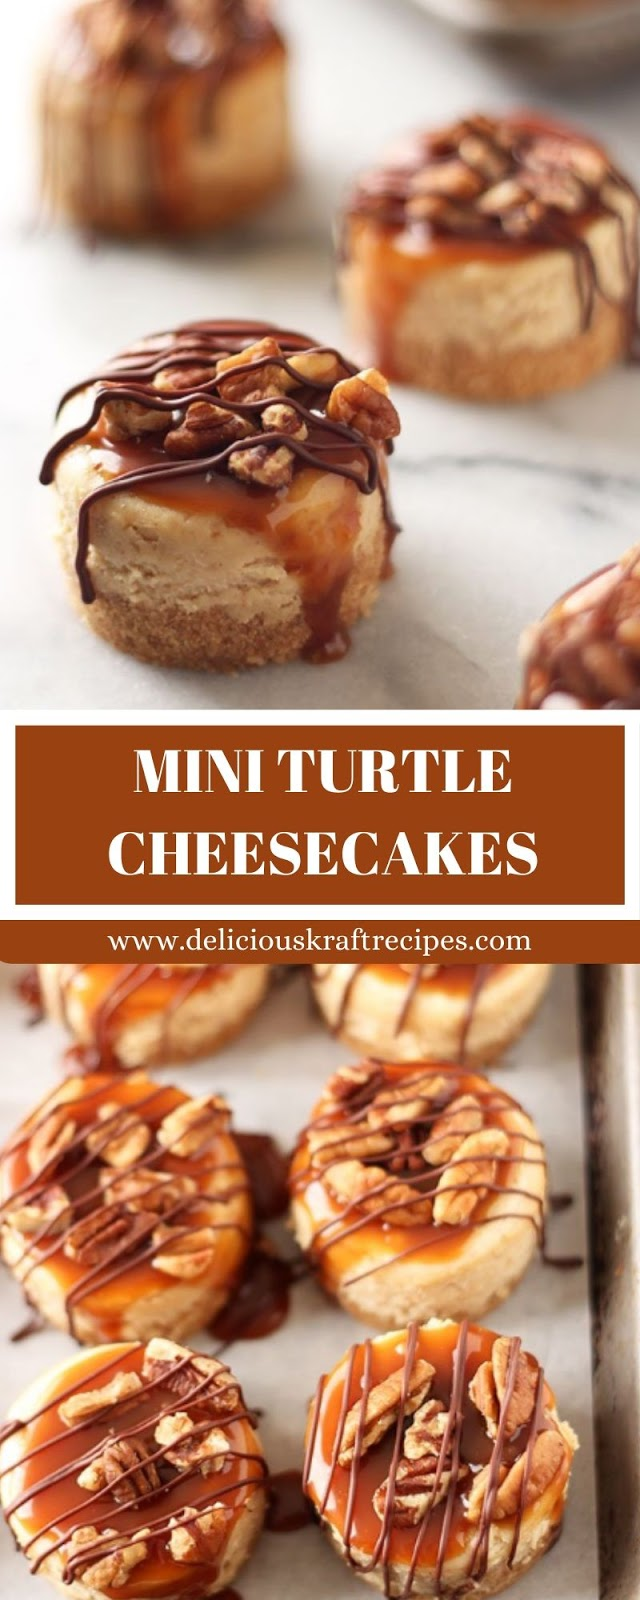 MINI TURTLE CHEESECAKES